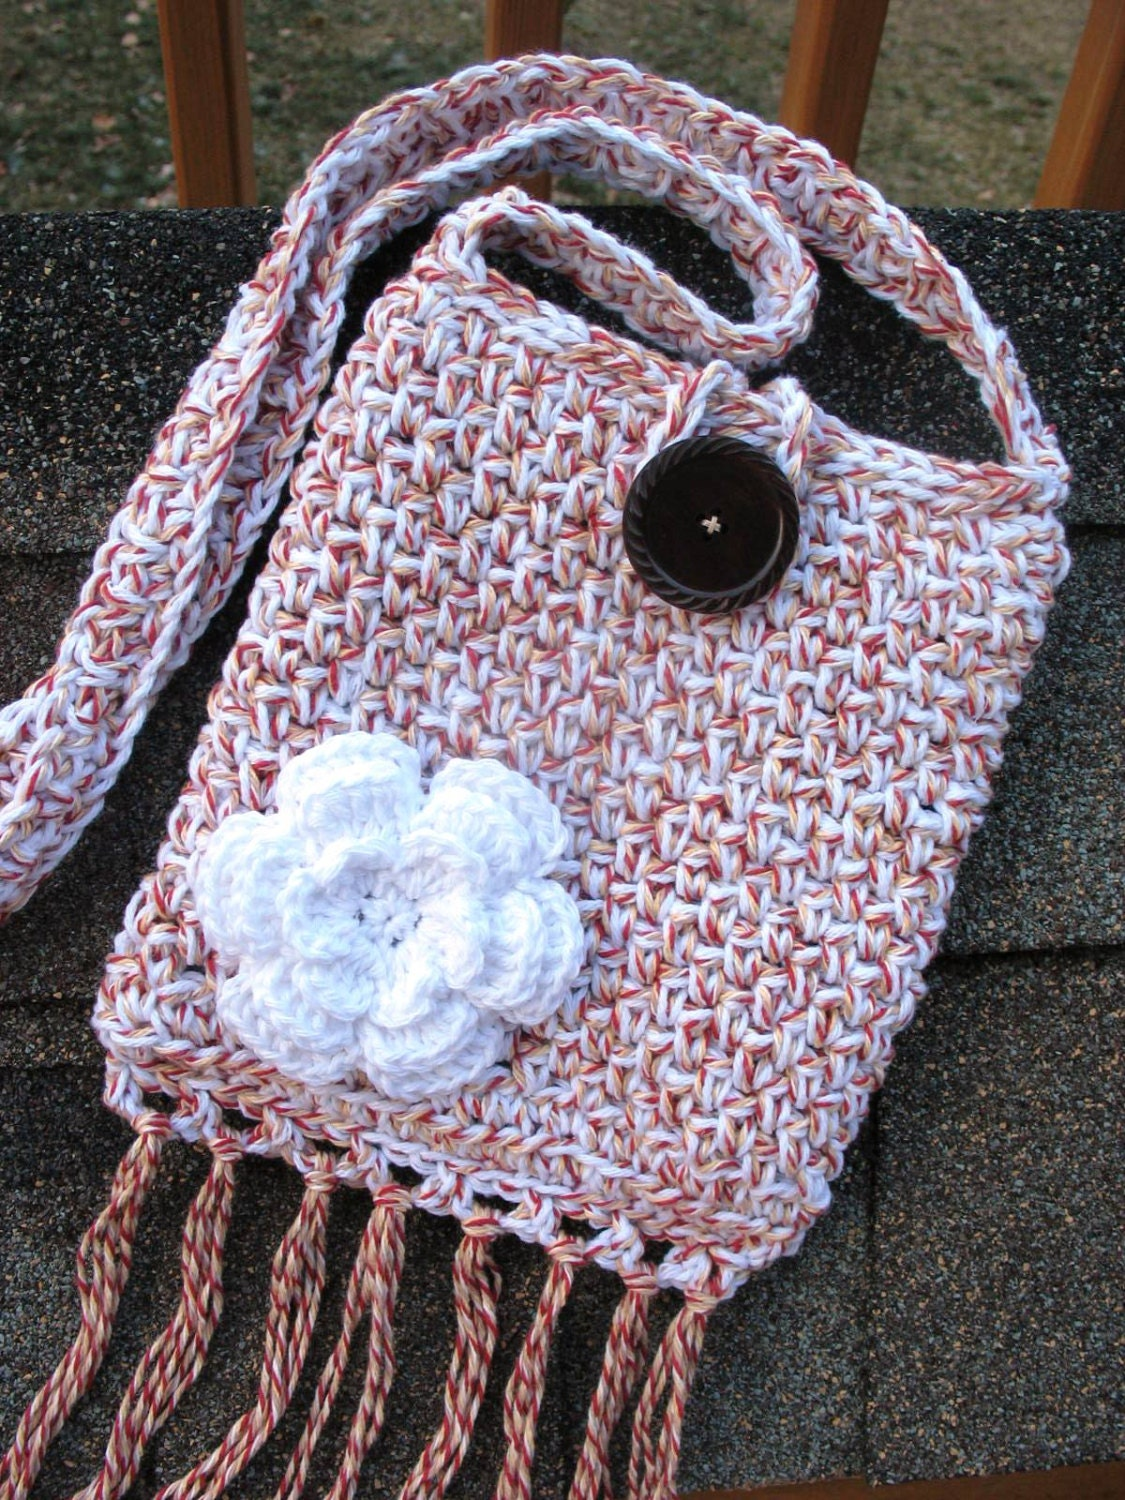 Crochet Crossbody Bag Pattern : Items similar to Crochet Cross-Body Bag/ Purse/ Pouch in Cotton, Fully ...